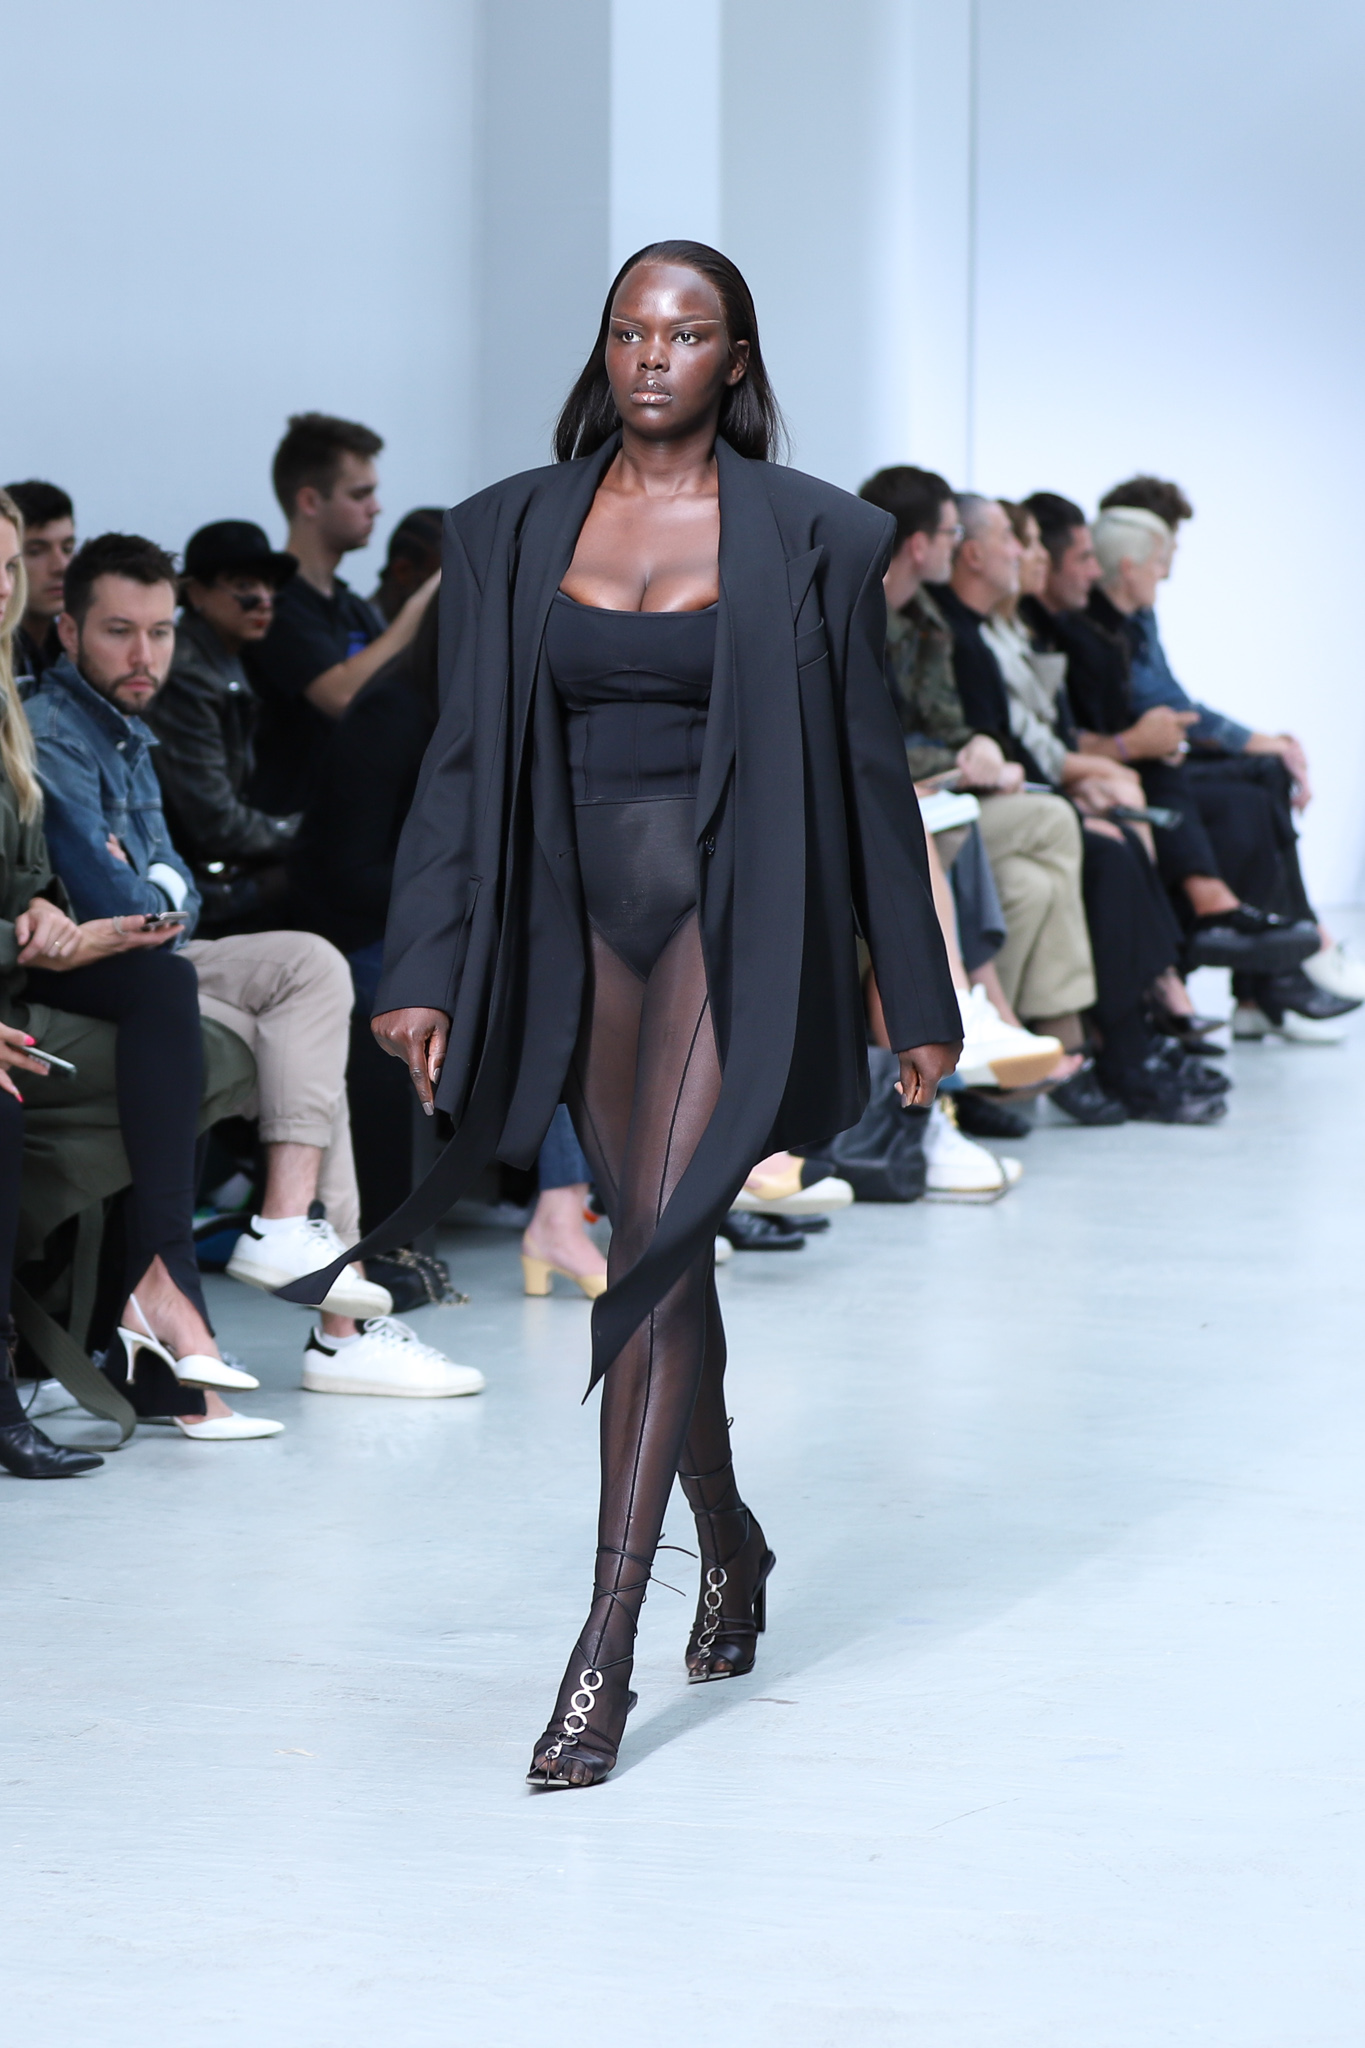 Mugler Runway Oversized Blazer in Black Sheer Leggings in Black Bodysuit in Black Tie Up Heels in Black Spring 20 RTW